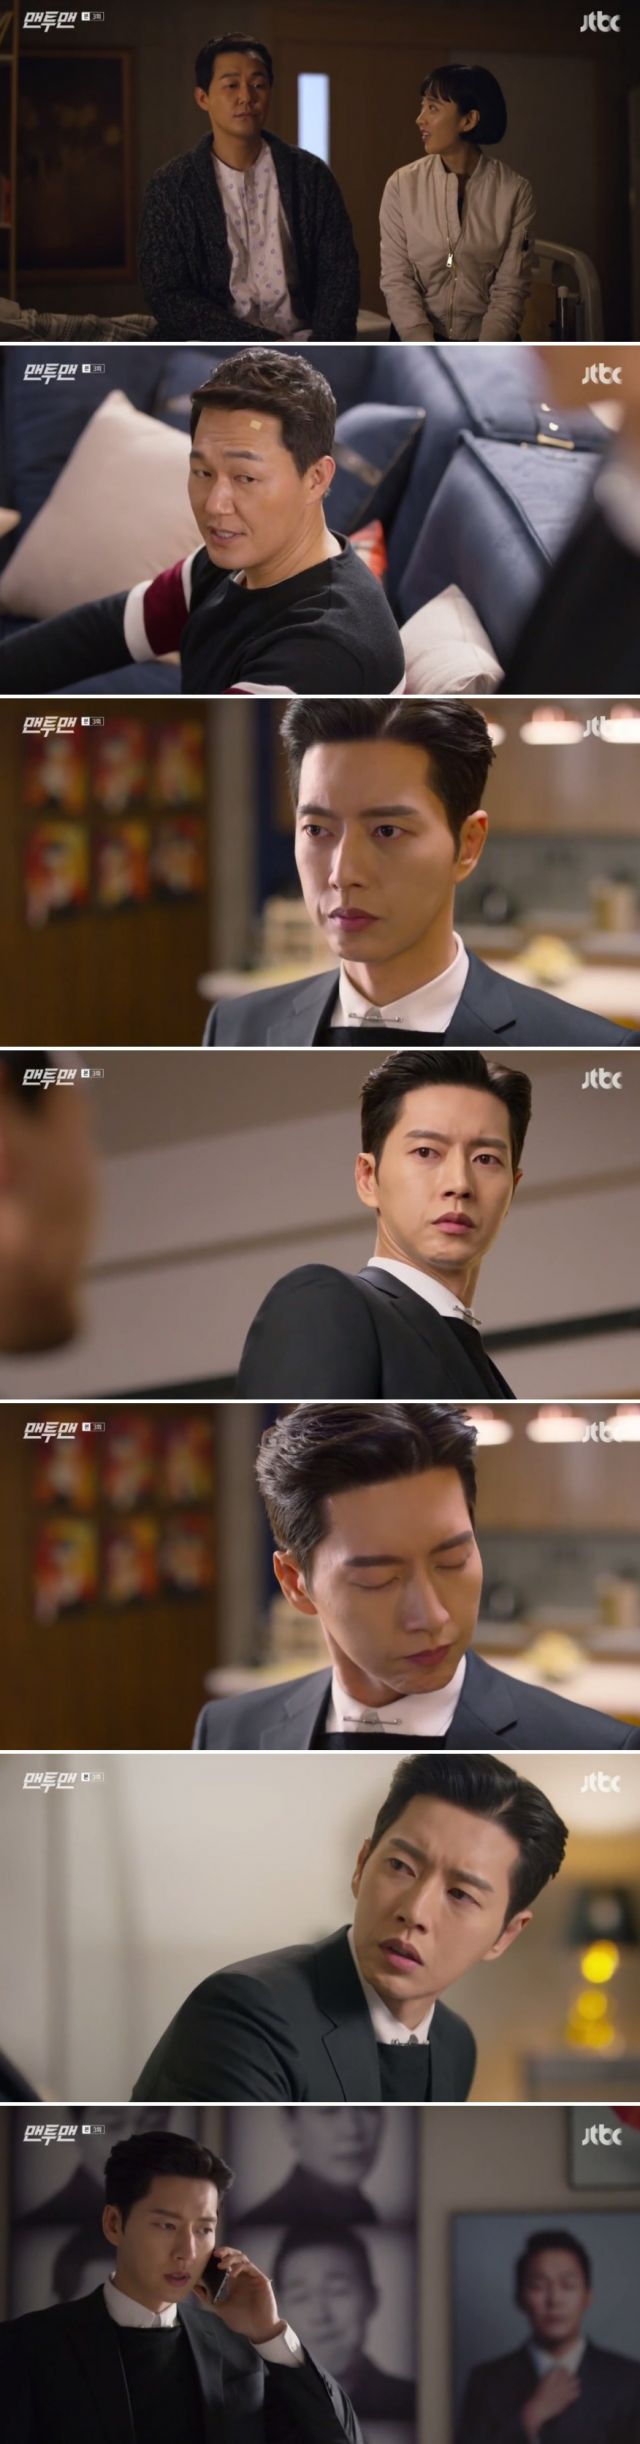 [Spoiler] Added episodes 3 and 4 captures for the Korean drama 'Man to Man'